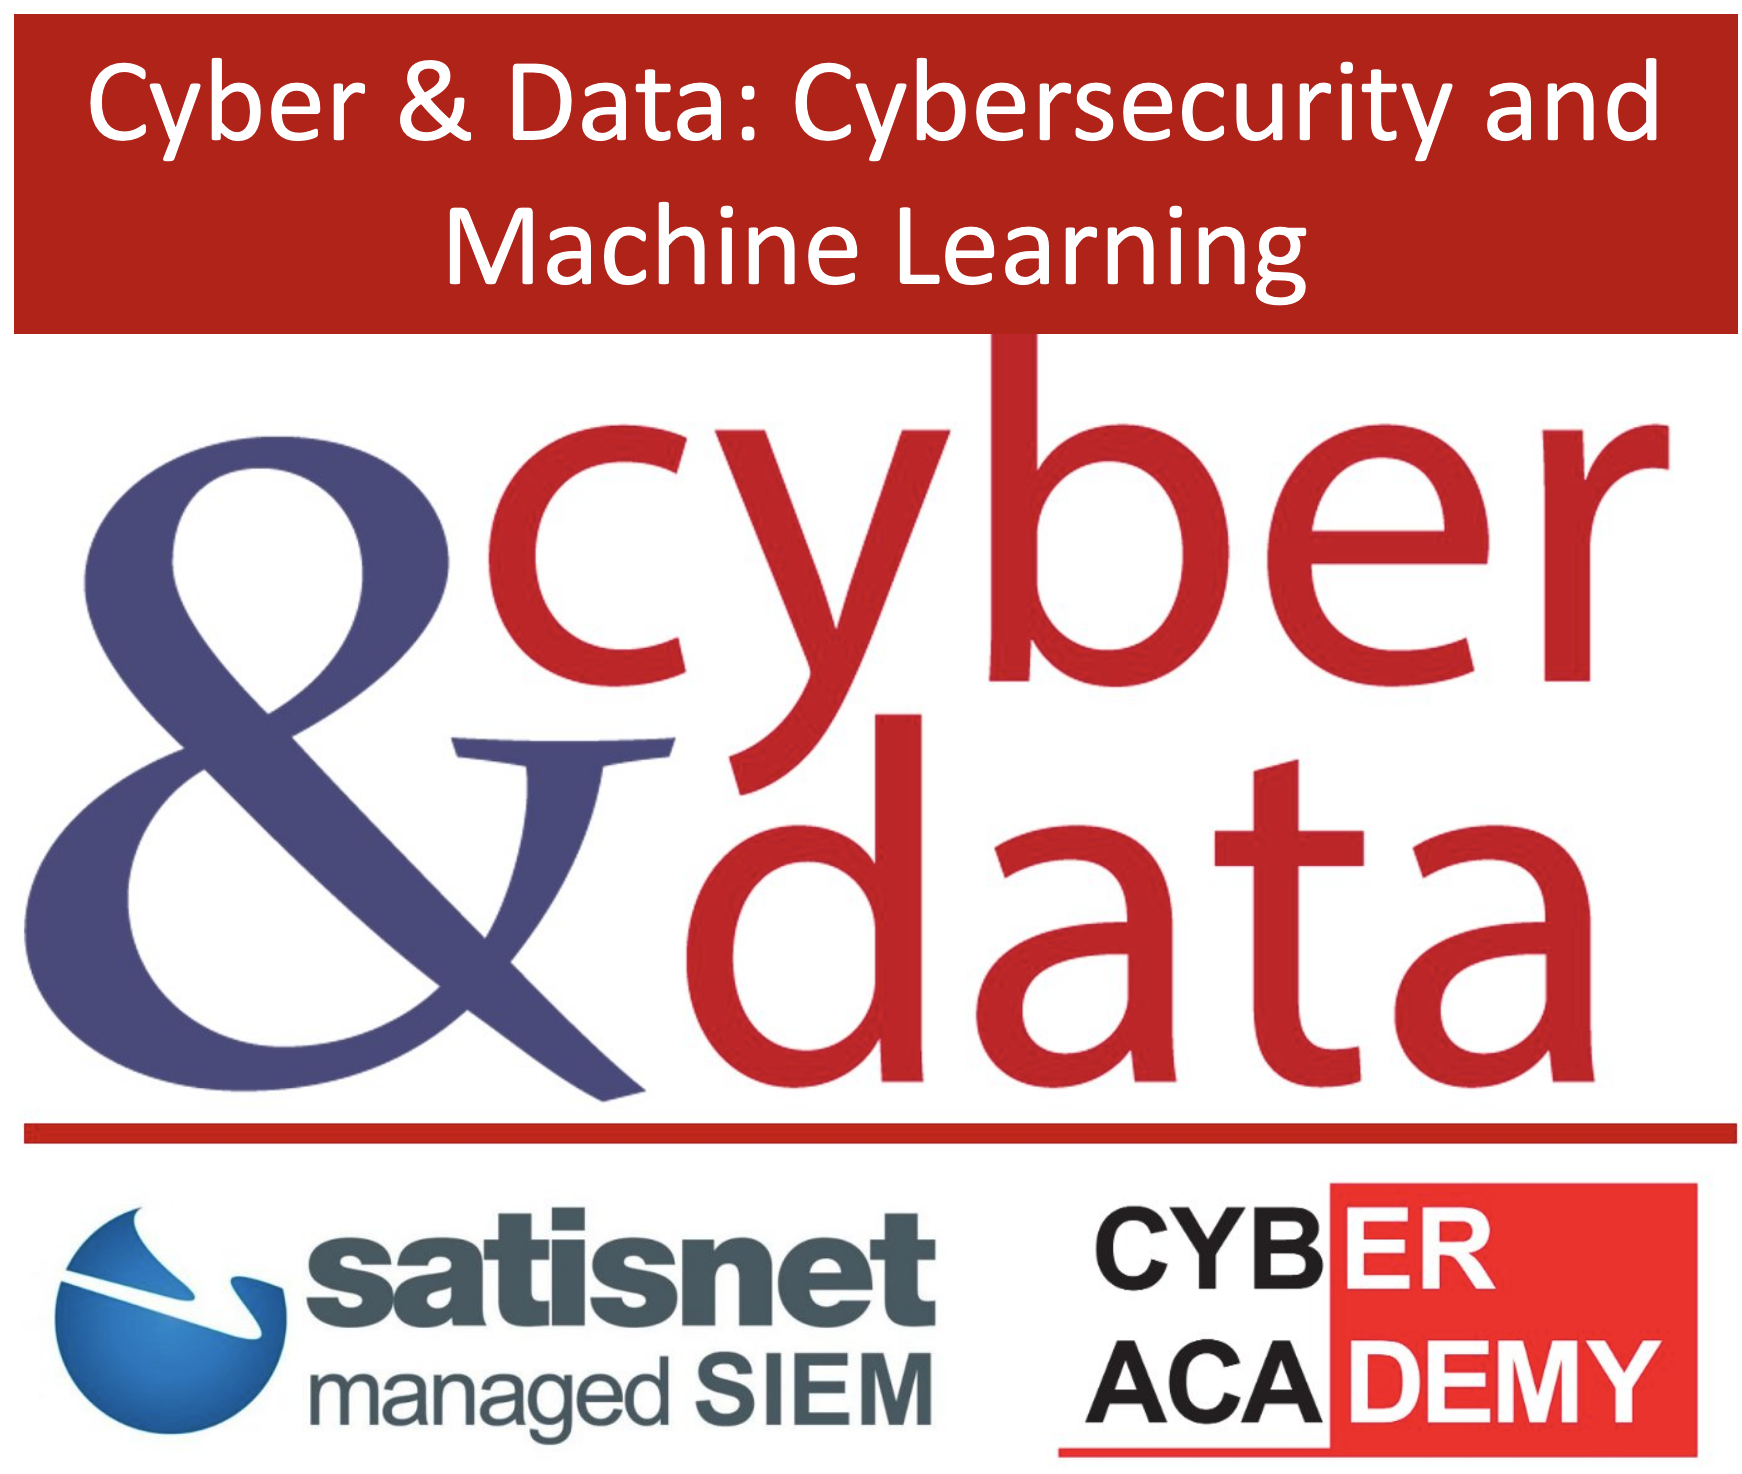 Cyber & Data: Cybersecurity and Machine Learning